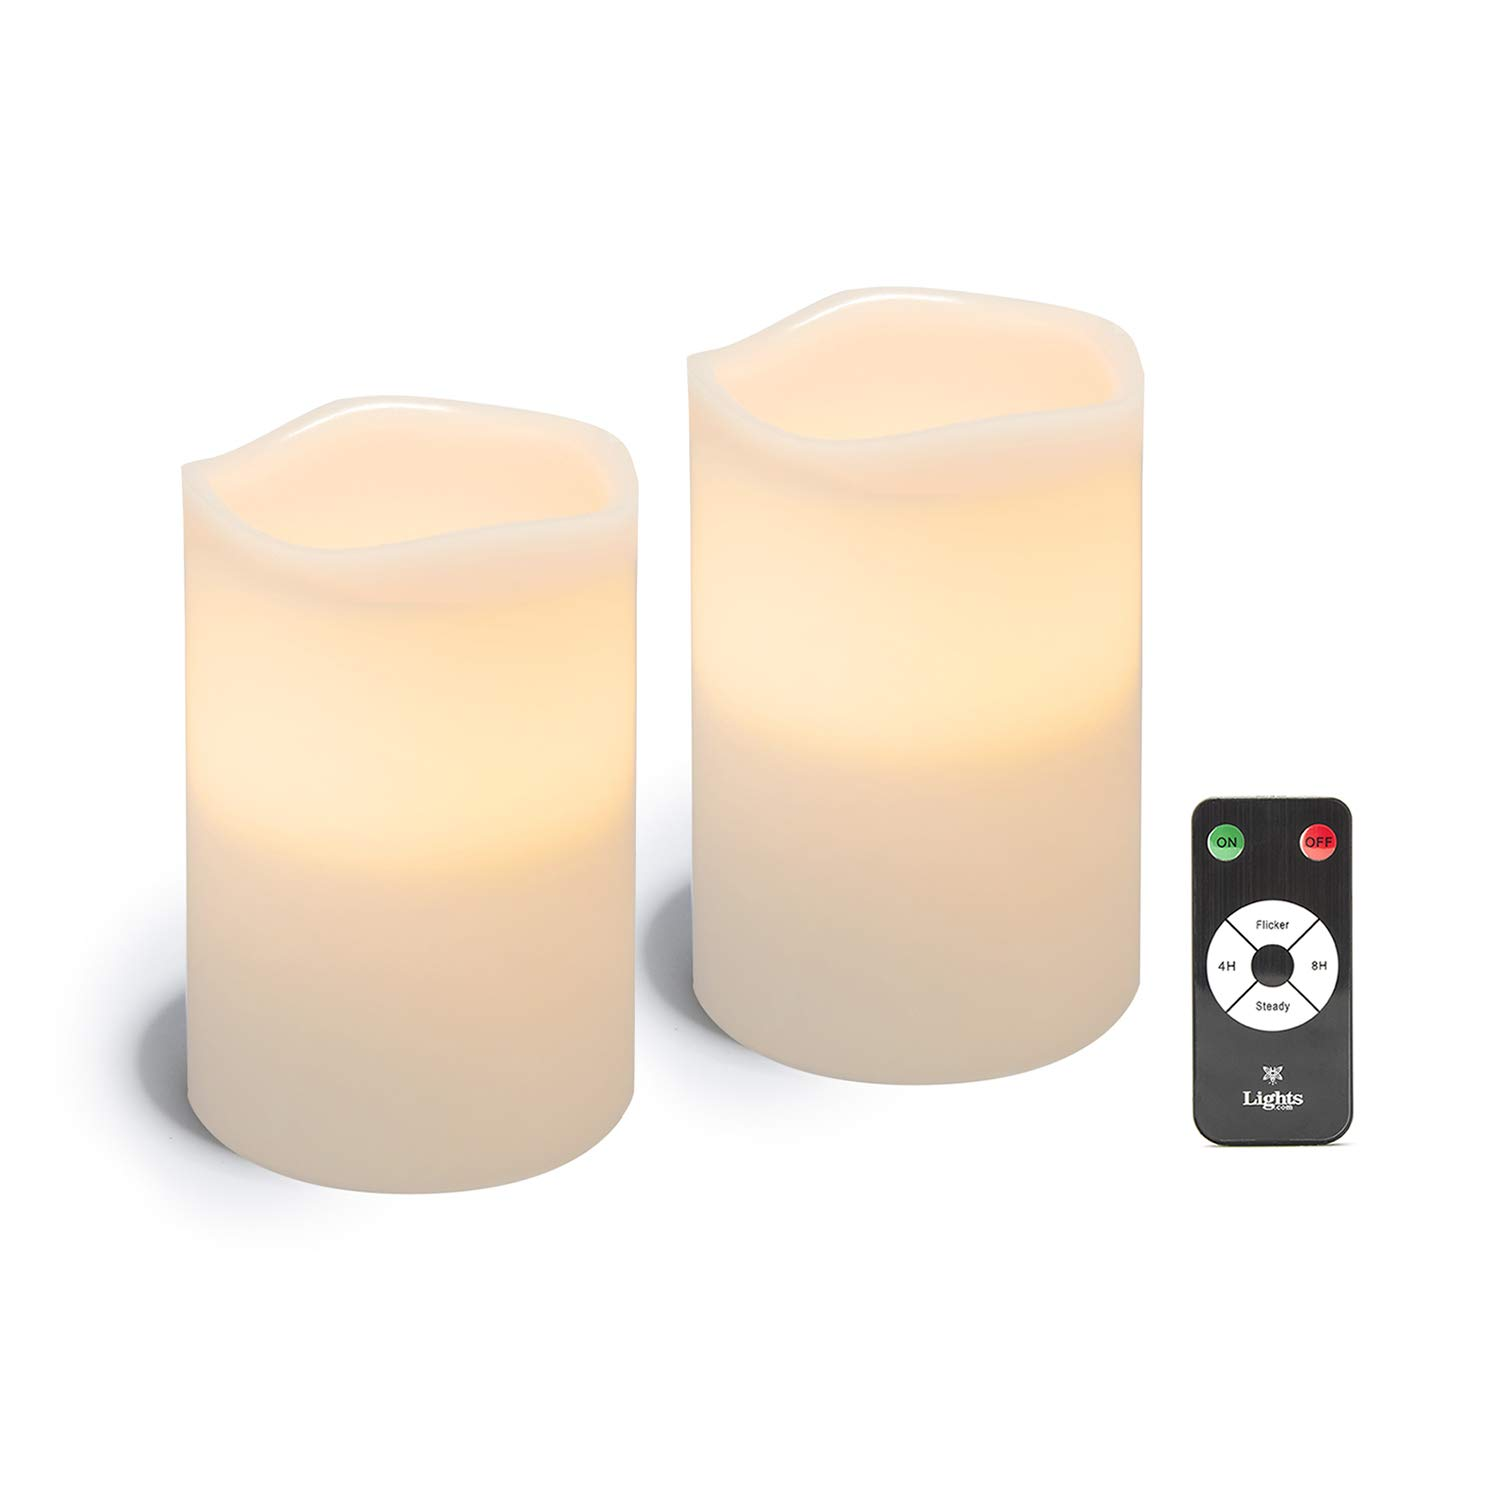 White LED Flameless Pillar Candles, 2 Pack, 4'' x 6'' Wax Candle Set, Melted Edge, Warm Natural Light - Batteries Included